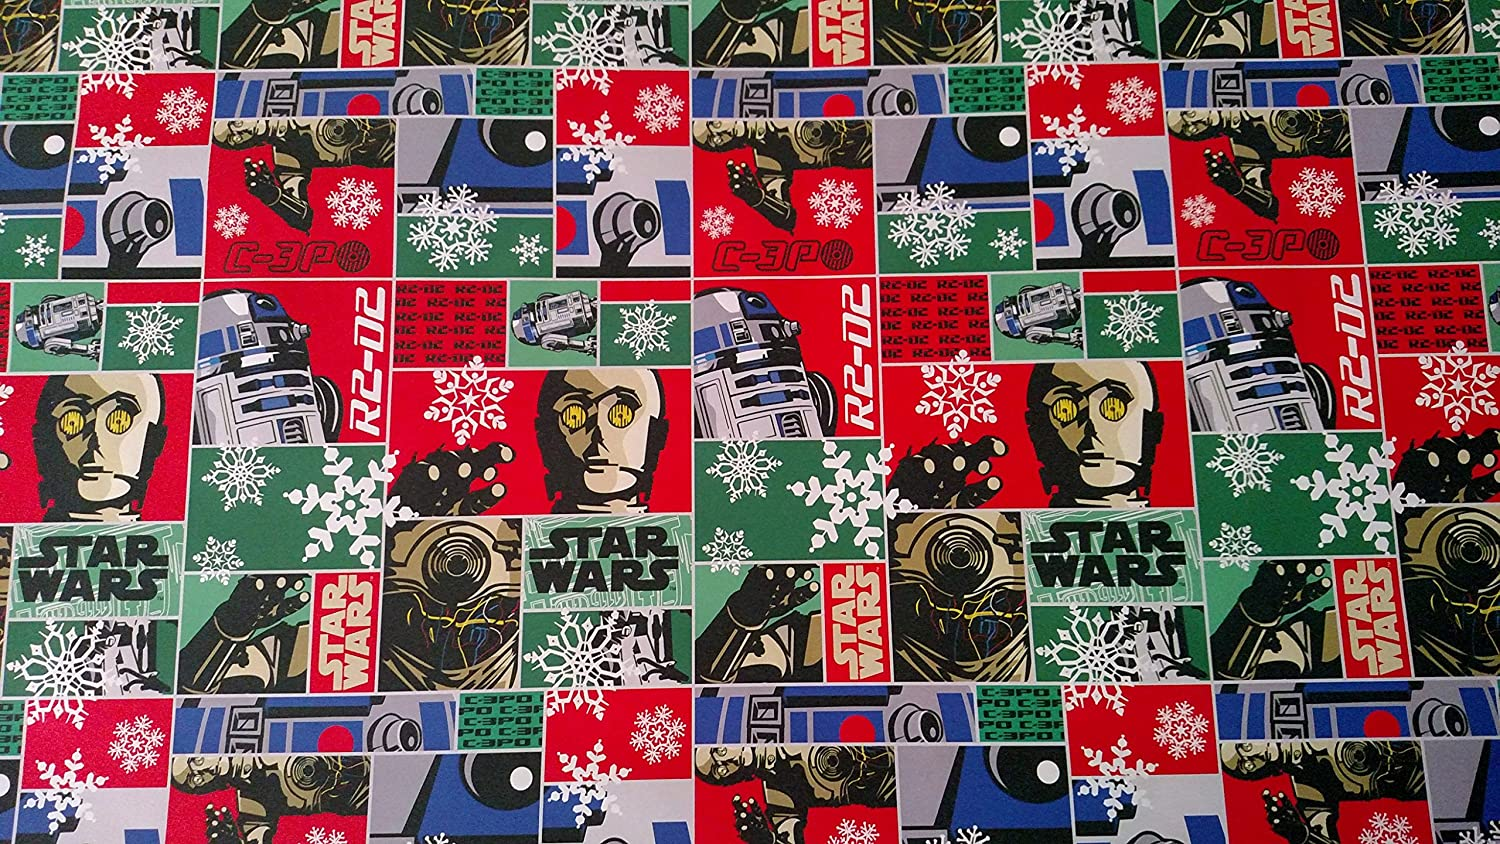 Amazon.com: Star Wars Wrapping Paper Droid Christmas Gift Wrap (1 ...